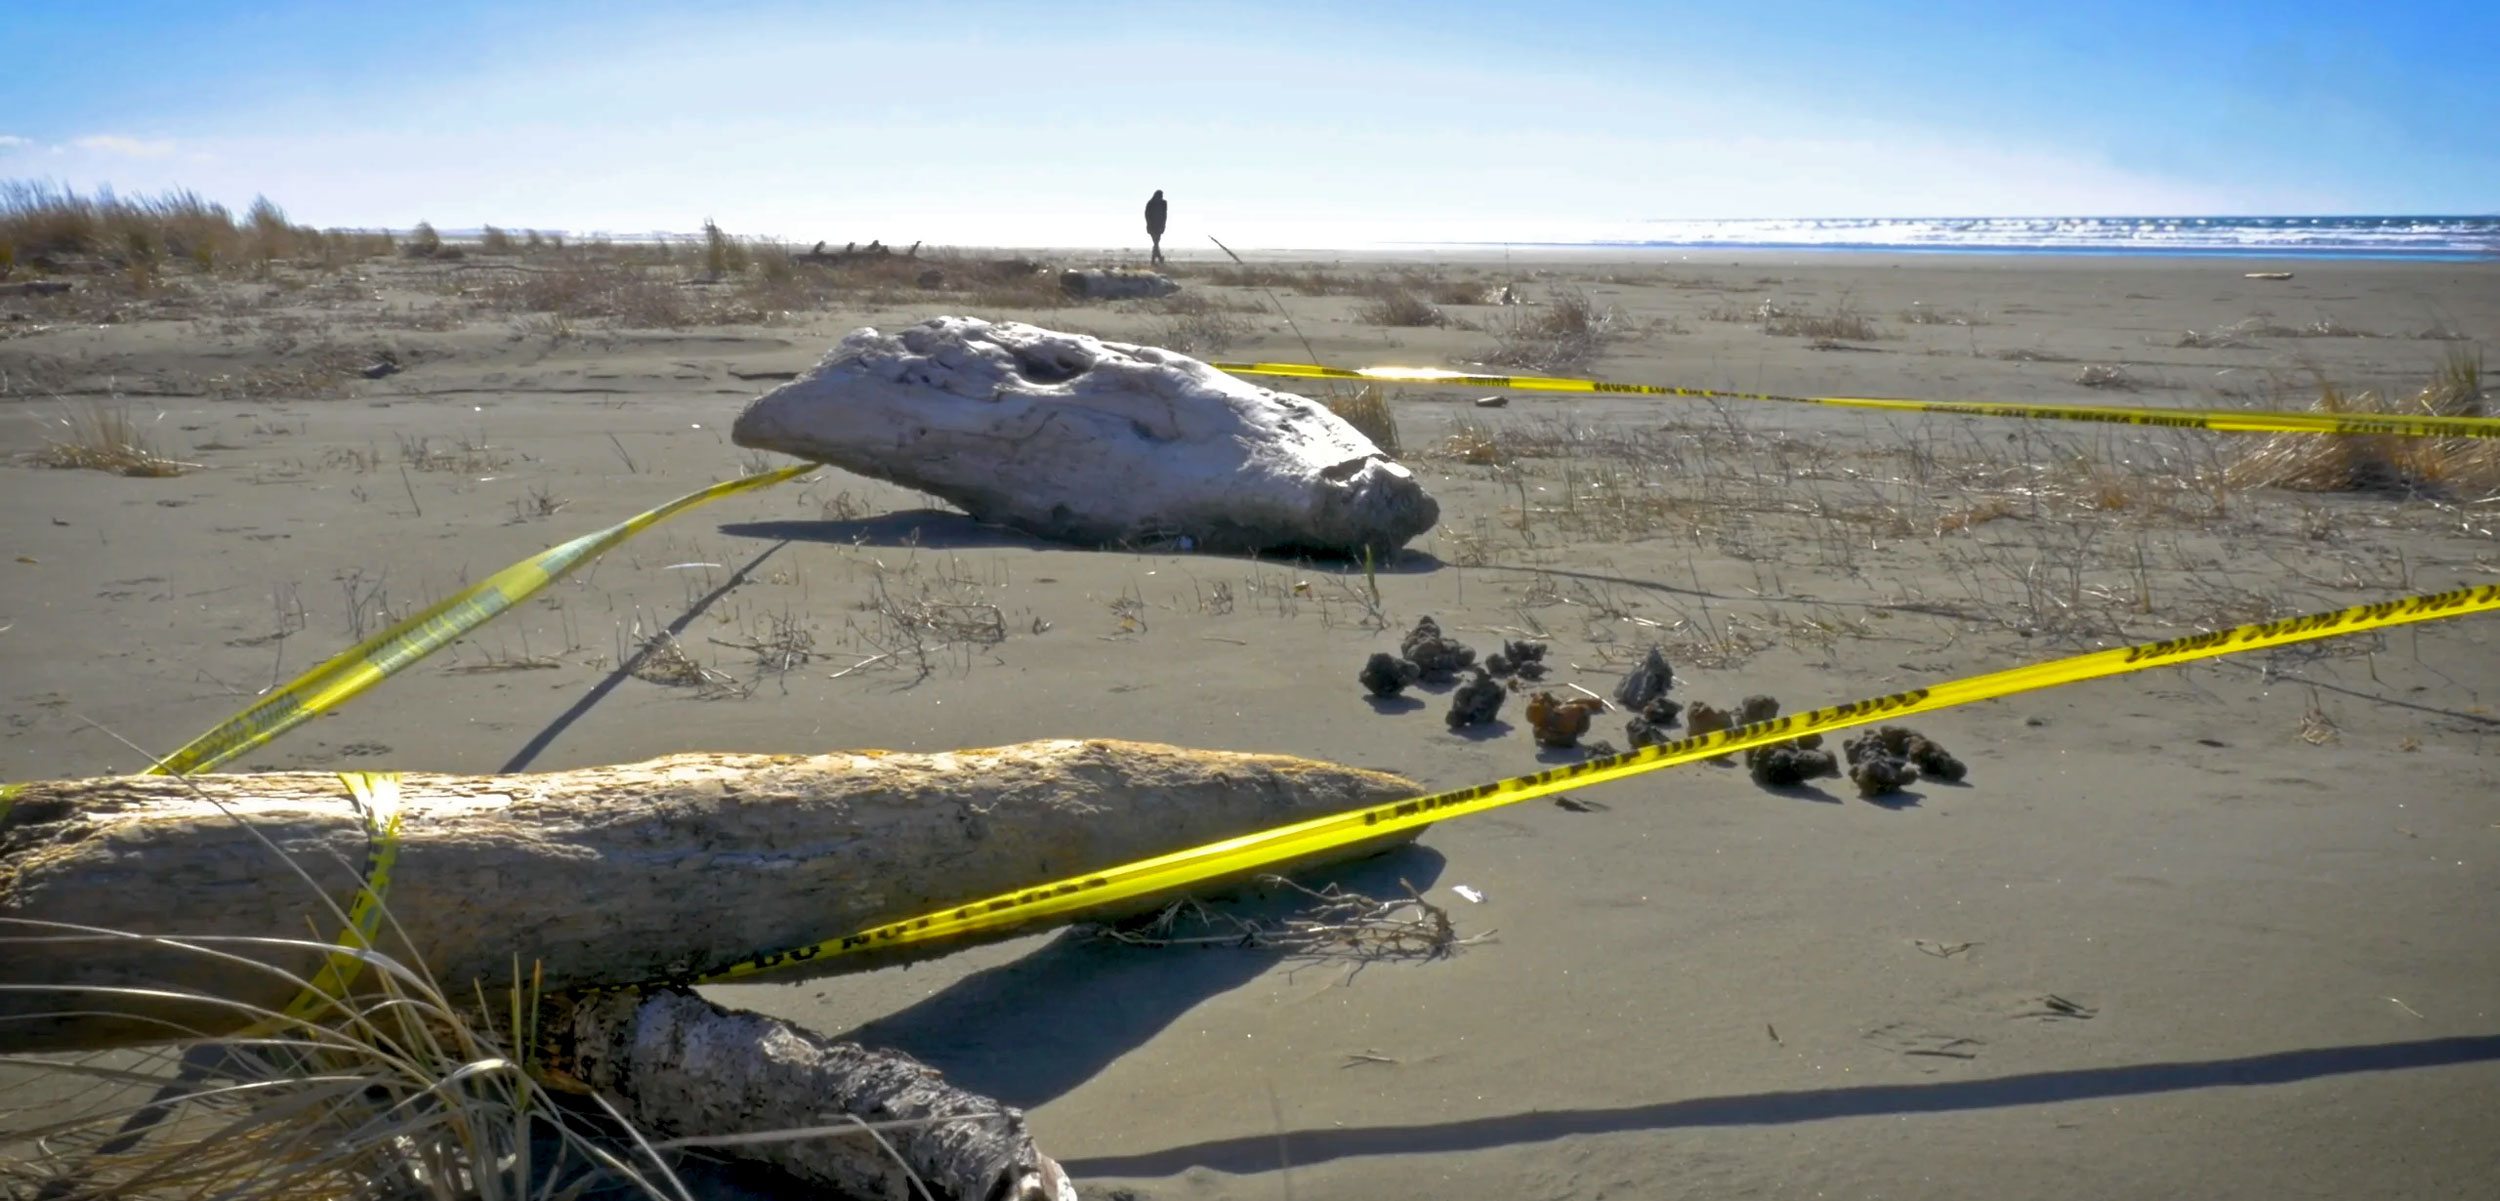 unexploded ordnances behind caution tape on the beach